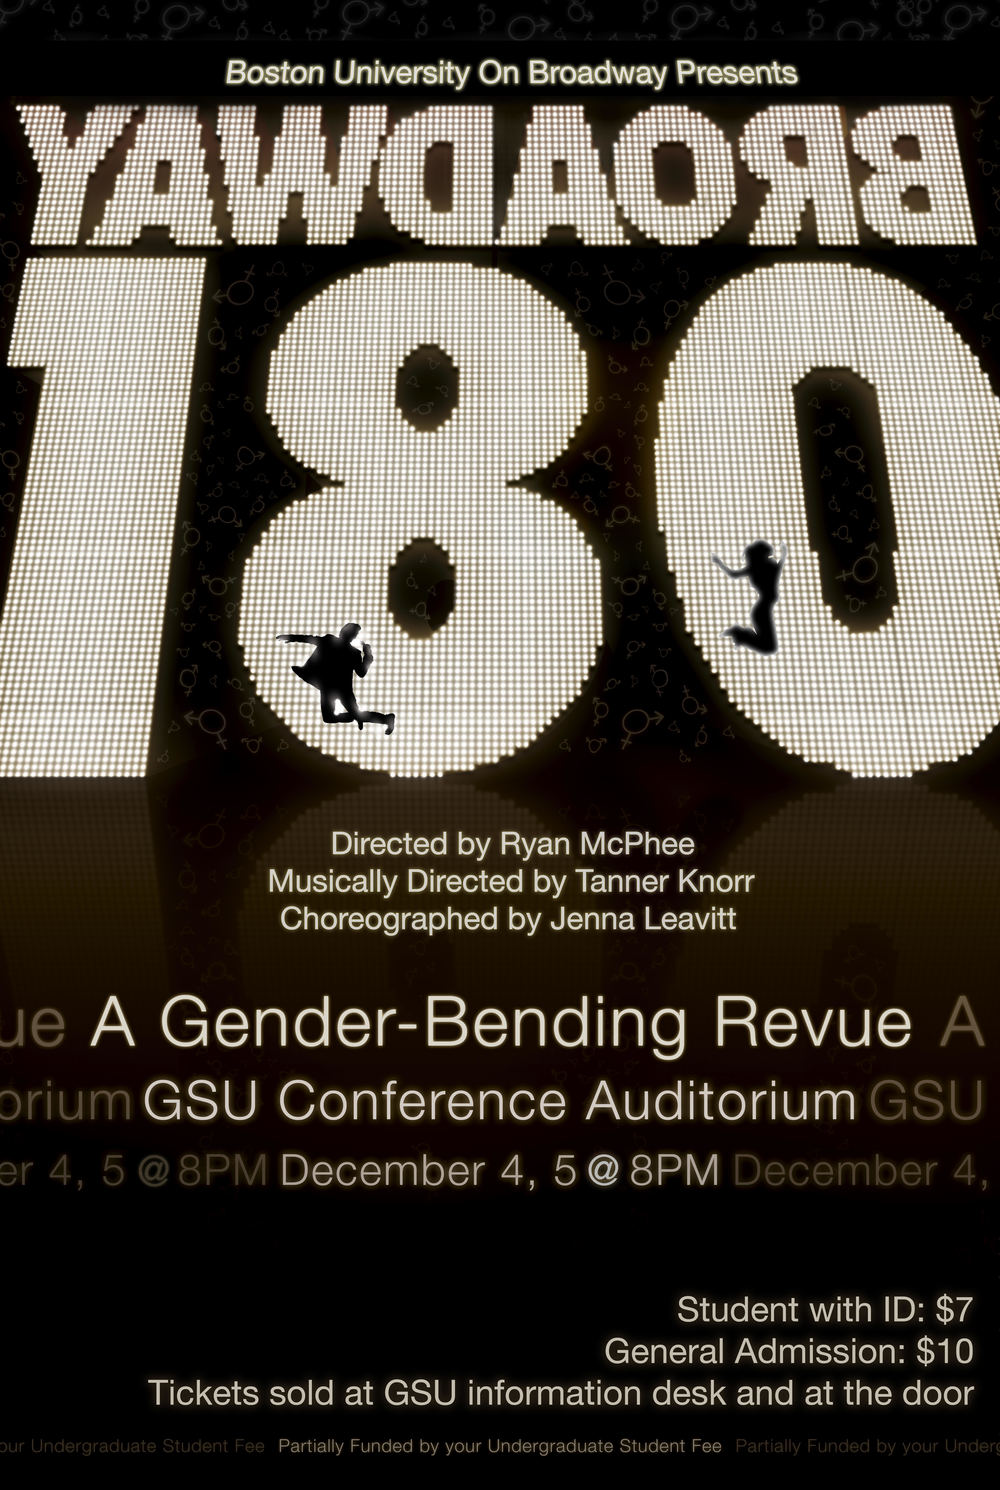 Broadway 180: A Gender-Bending Revue (Fall 2009)